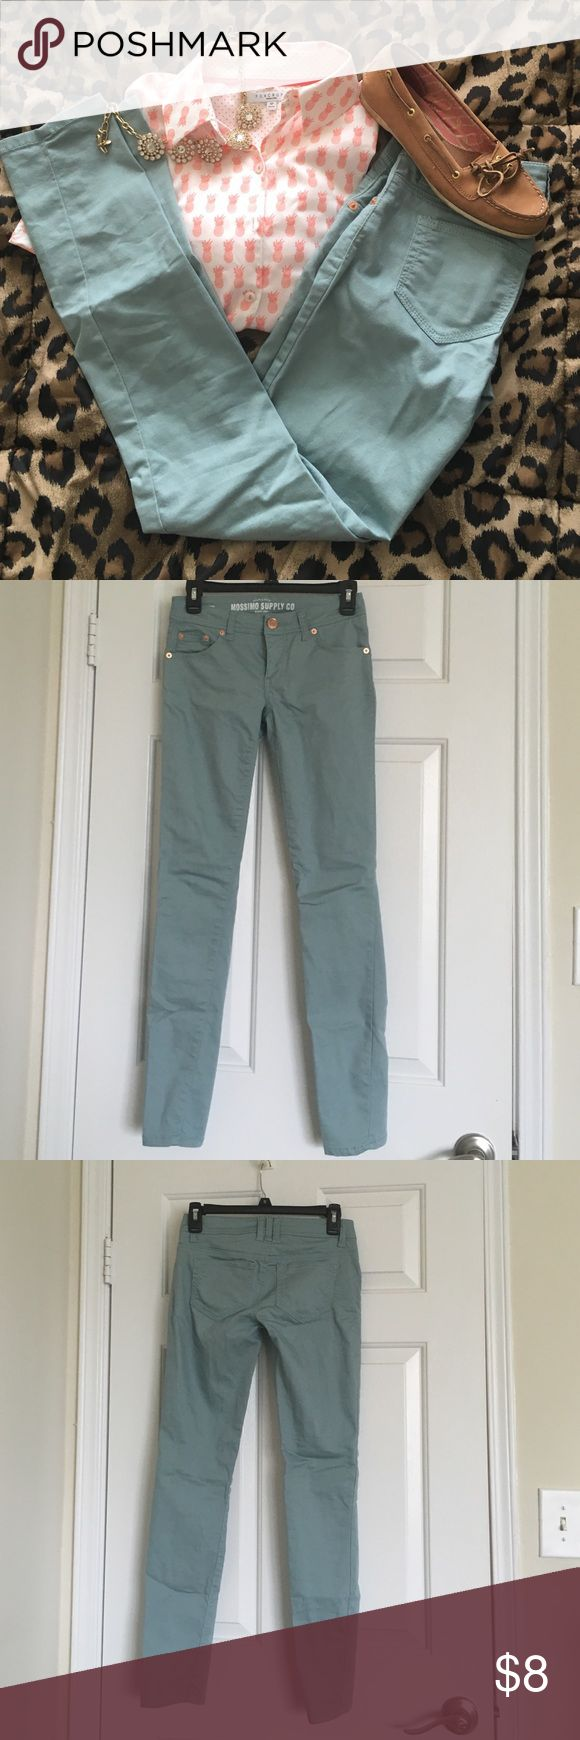 Mossimo Light Teal Skinny Jeans Light teal skinny jean (with stretch). Good condition! Mossimo Supply Co Jeans Skinny